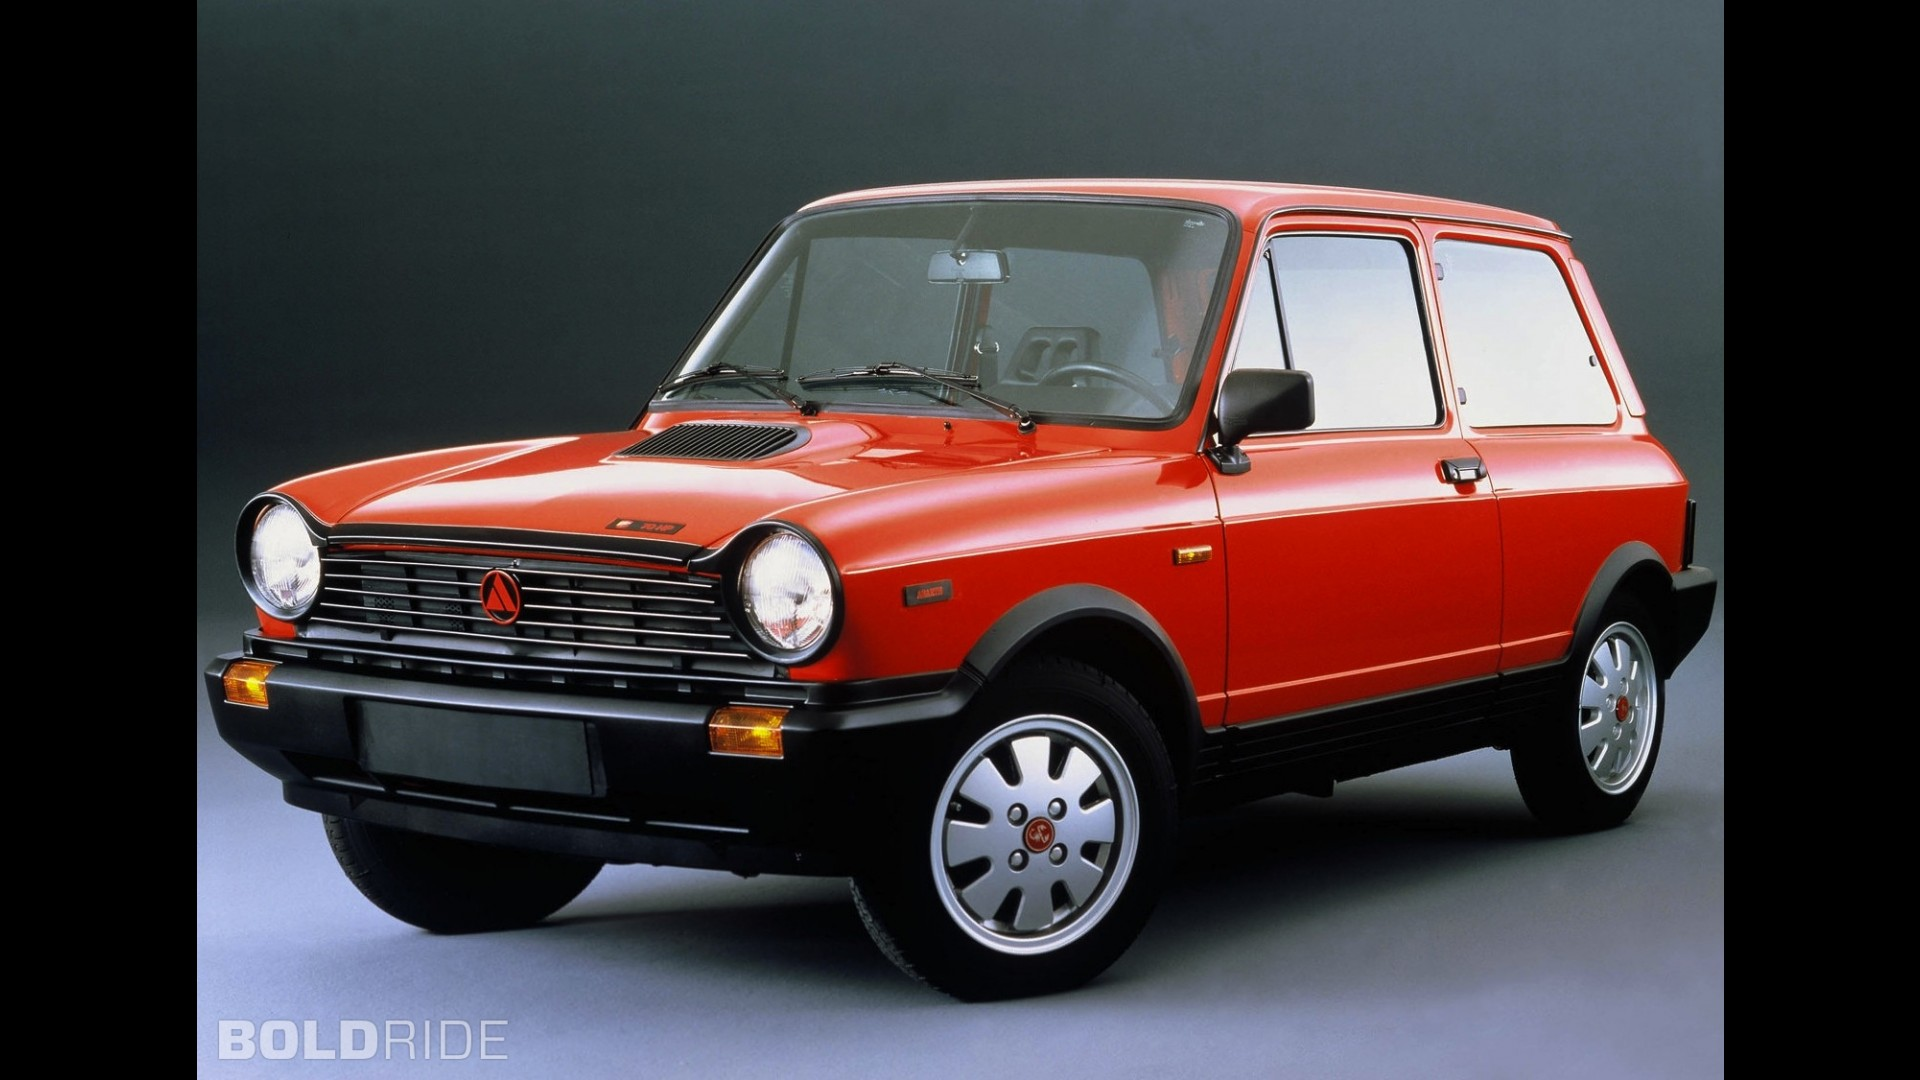 http://icdn-5.motor1.com/images/mgl/gG99m/s1/lancia-autobianchi-a112.jpg